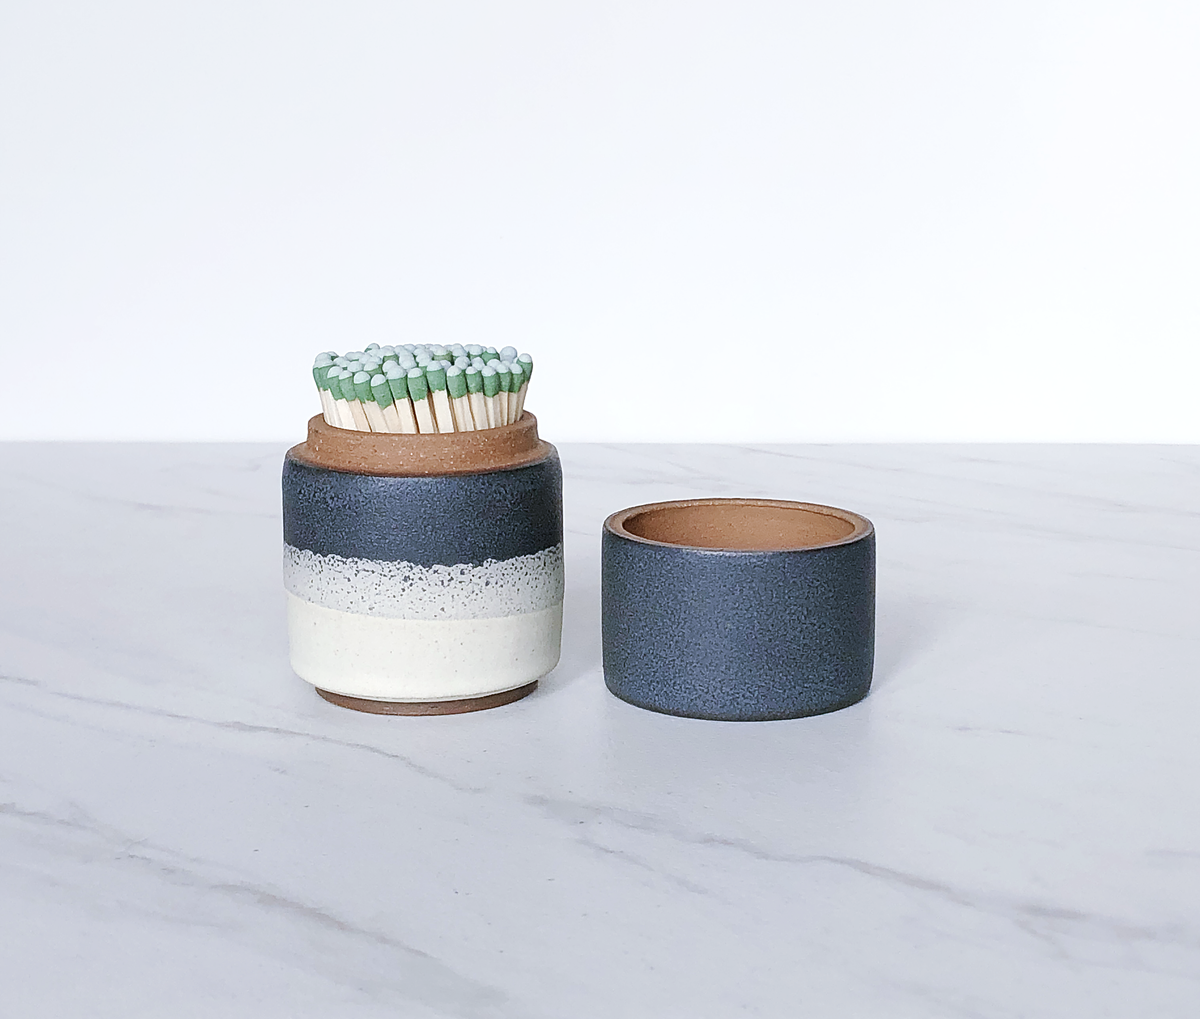 Image of Ceramic match holder with lid, glazed in matte navy + cream